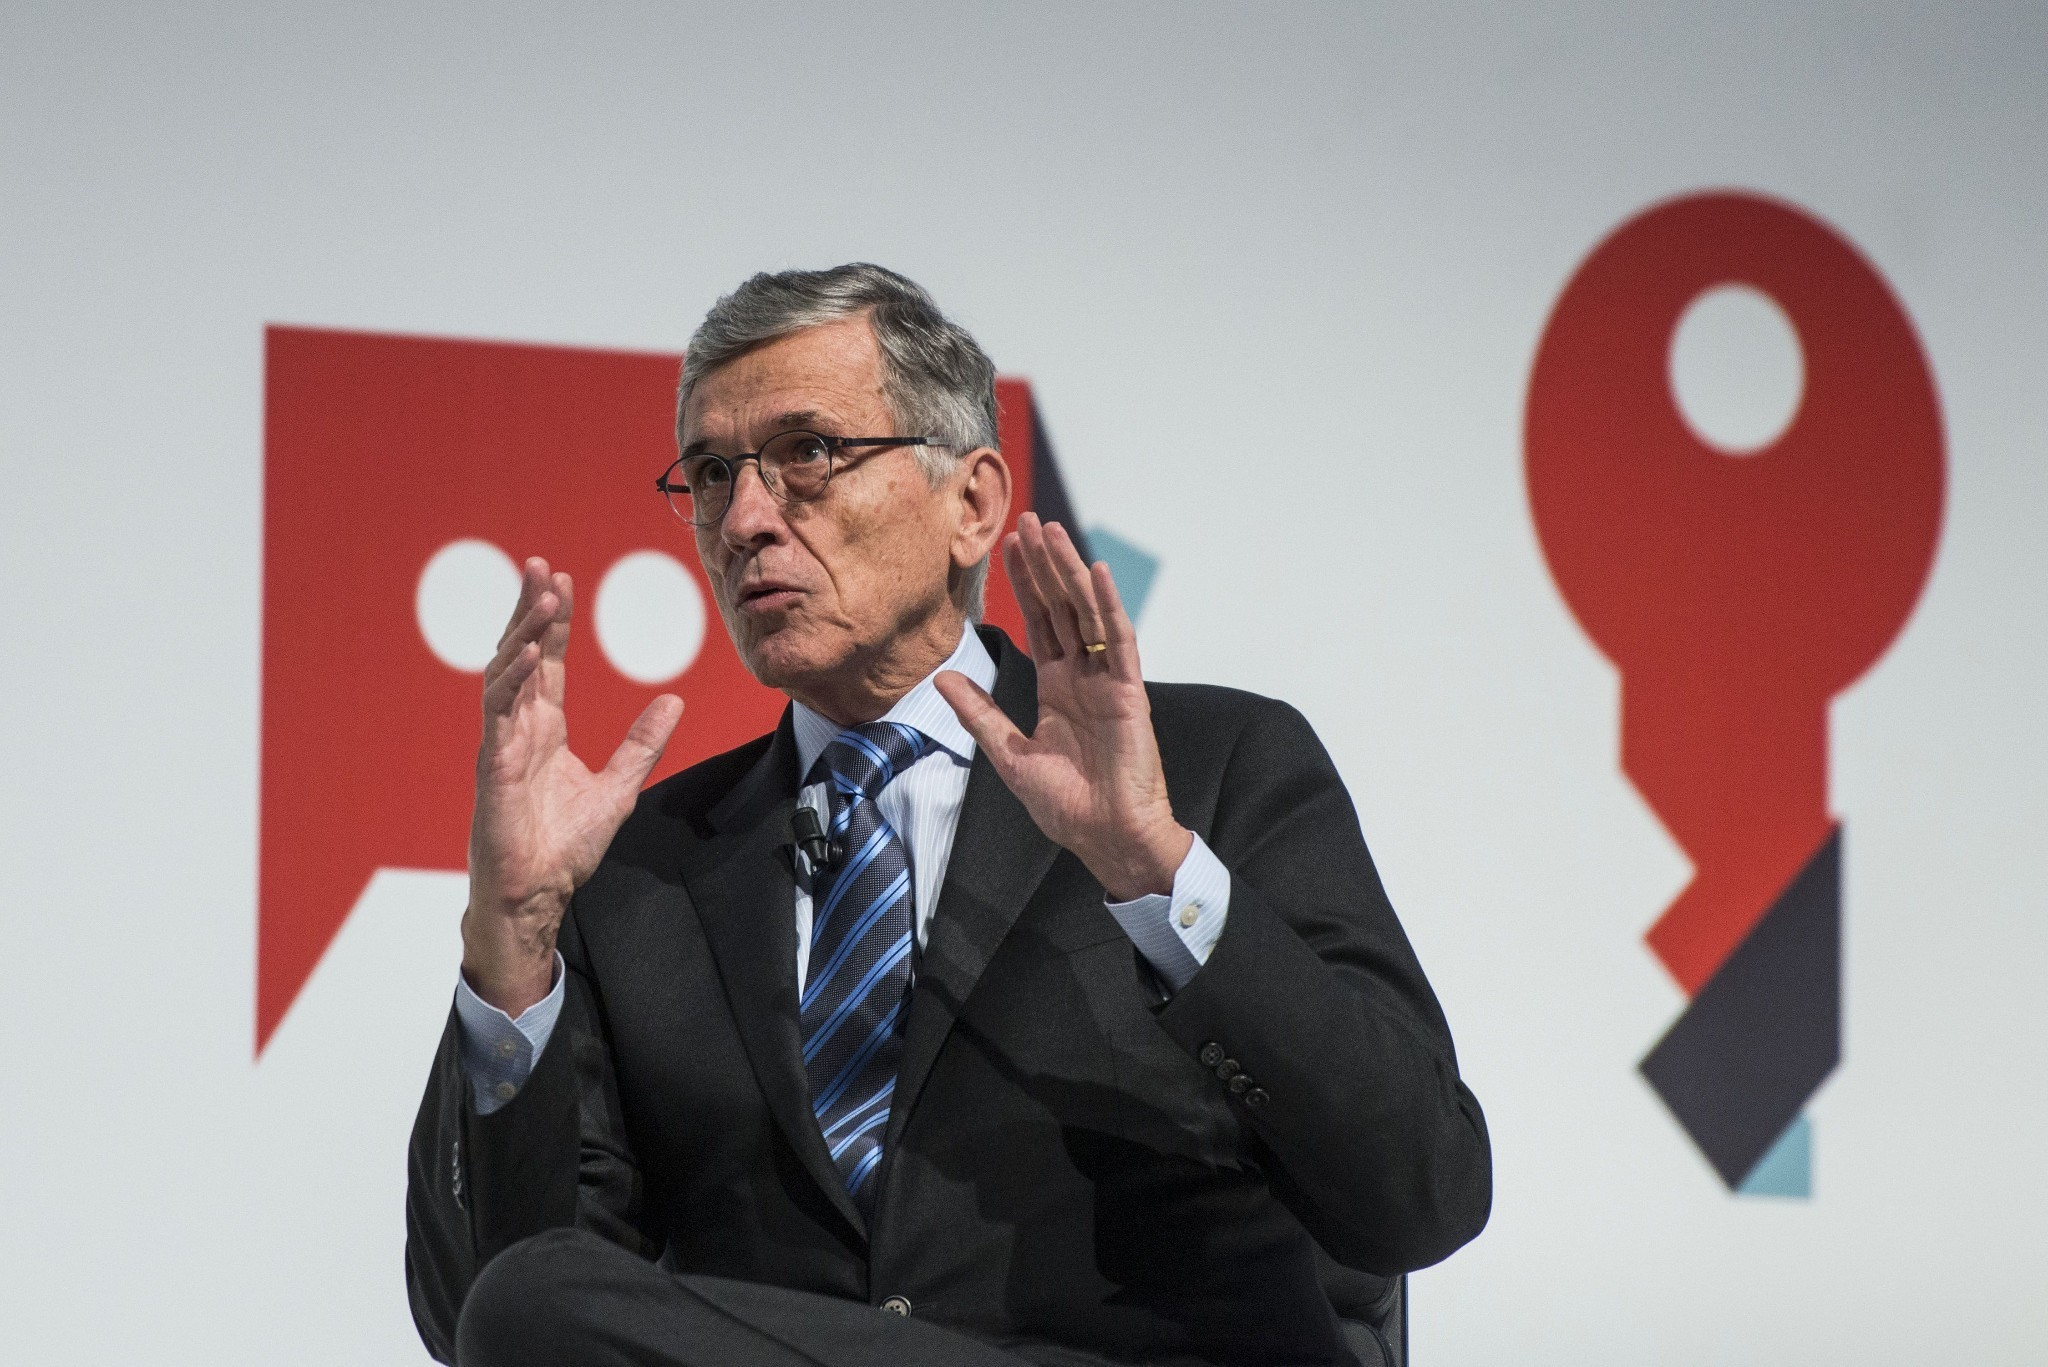 FCC's Wheeler makes net neutrality case before global carriers